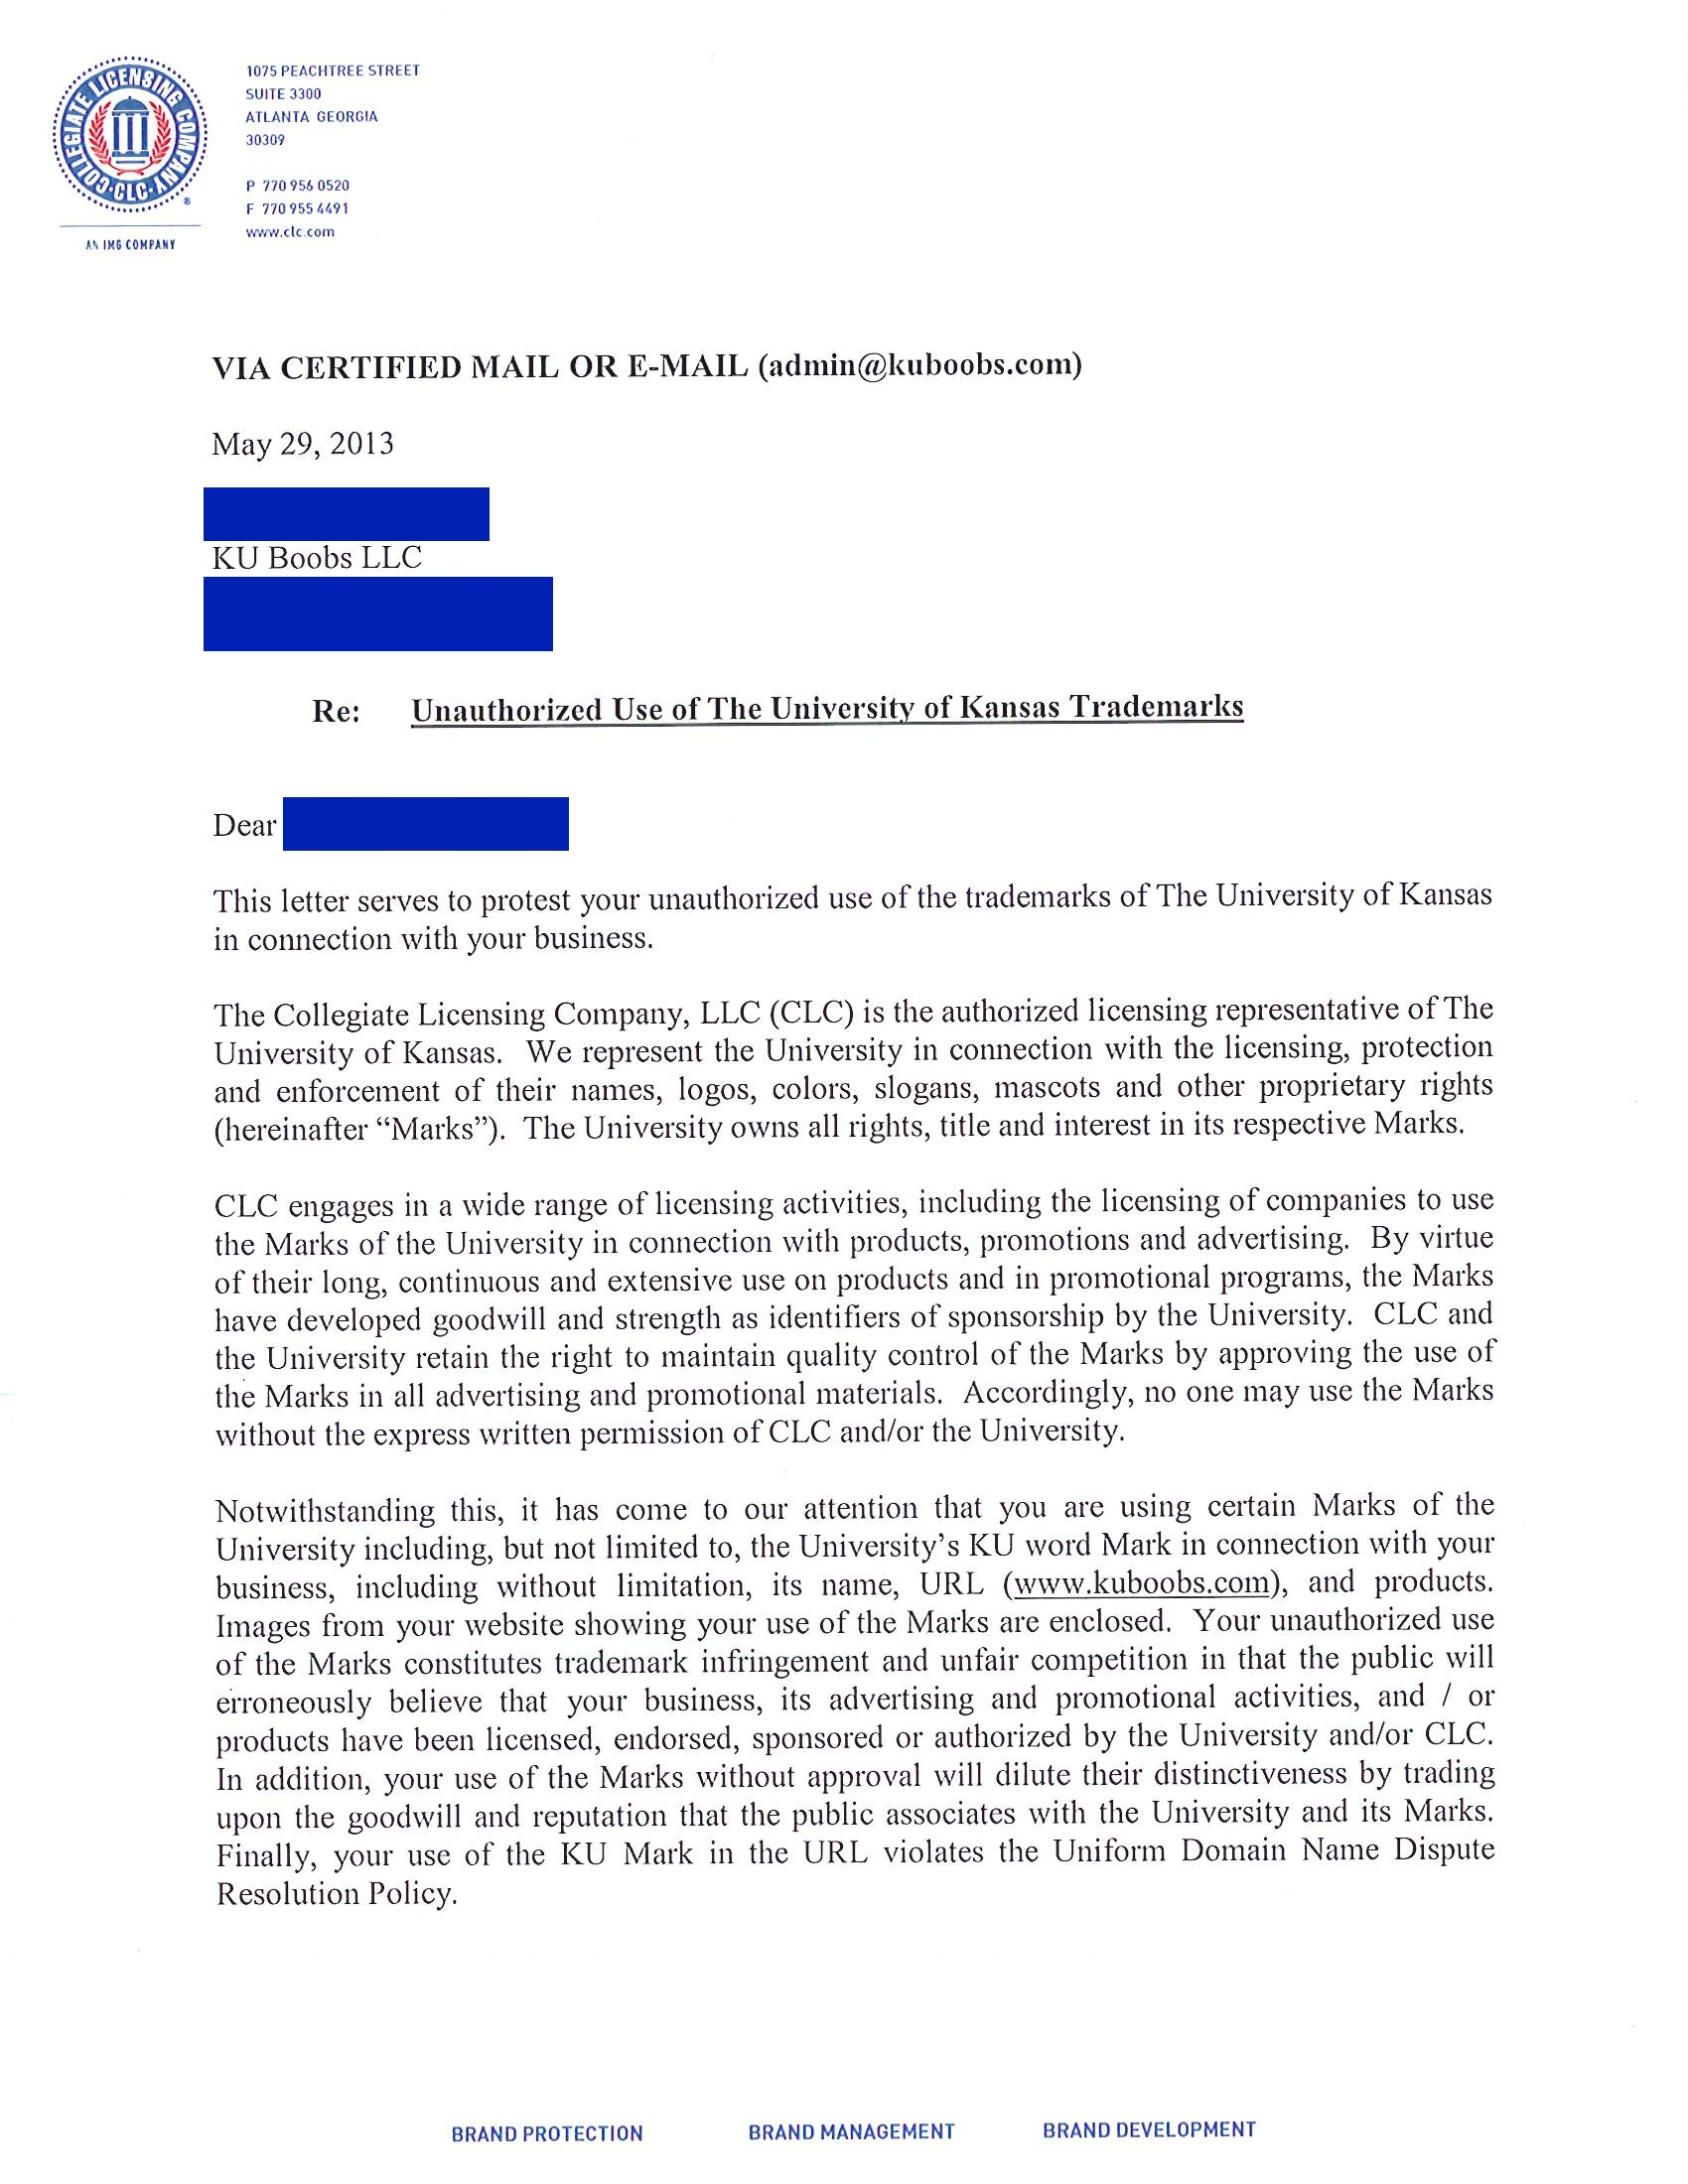 ku boobs cease and desist